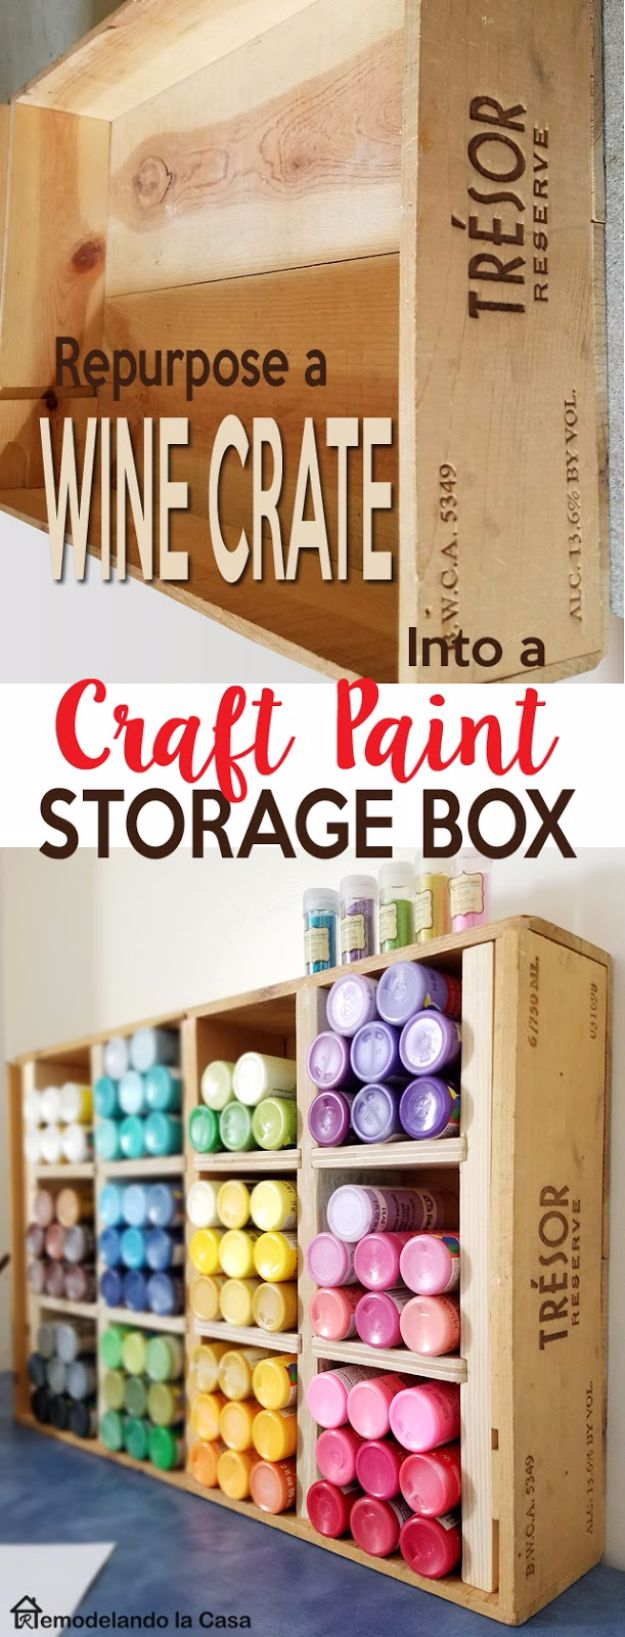 DIY Craft Room Storage Ideas and Craft Room Organization Projects - Wine Crate Craft Paint Storage Box - Cool Ideas for Do It Yourself Craft Storage, Craft Room Decor and Organizing Project Ideas - fabric, paper, pens, creative tools, crafts supplies, shelves and sewing notions #diyideas #craftroom